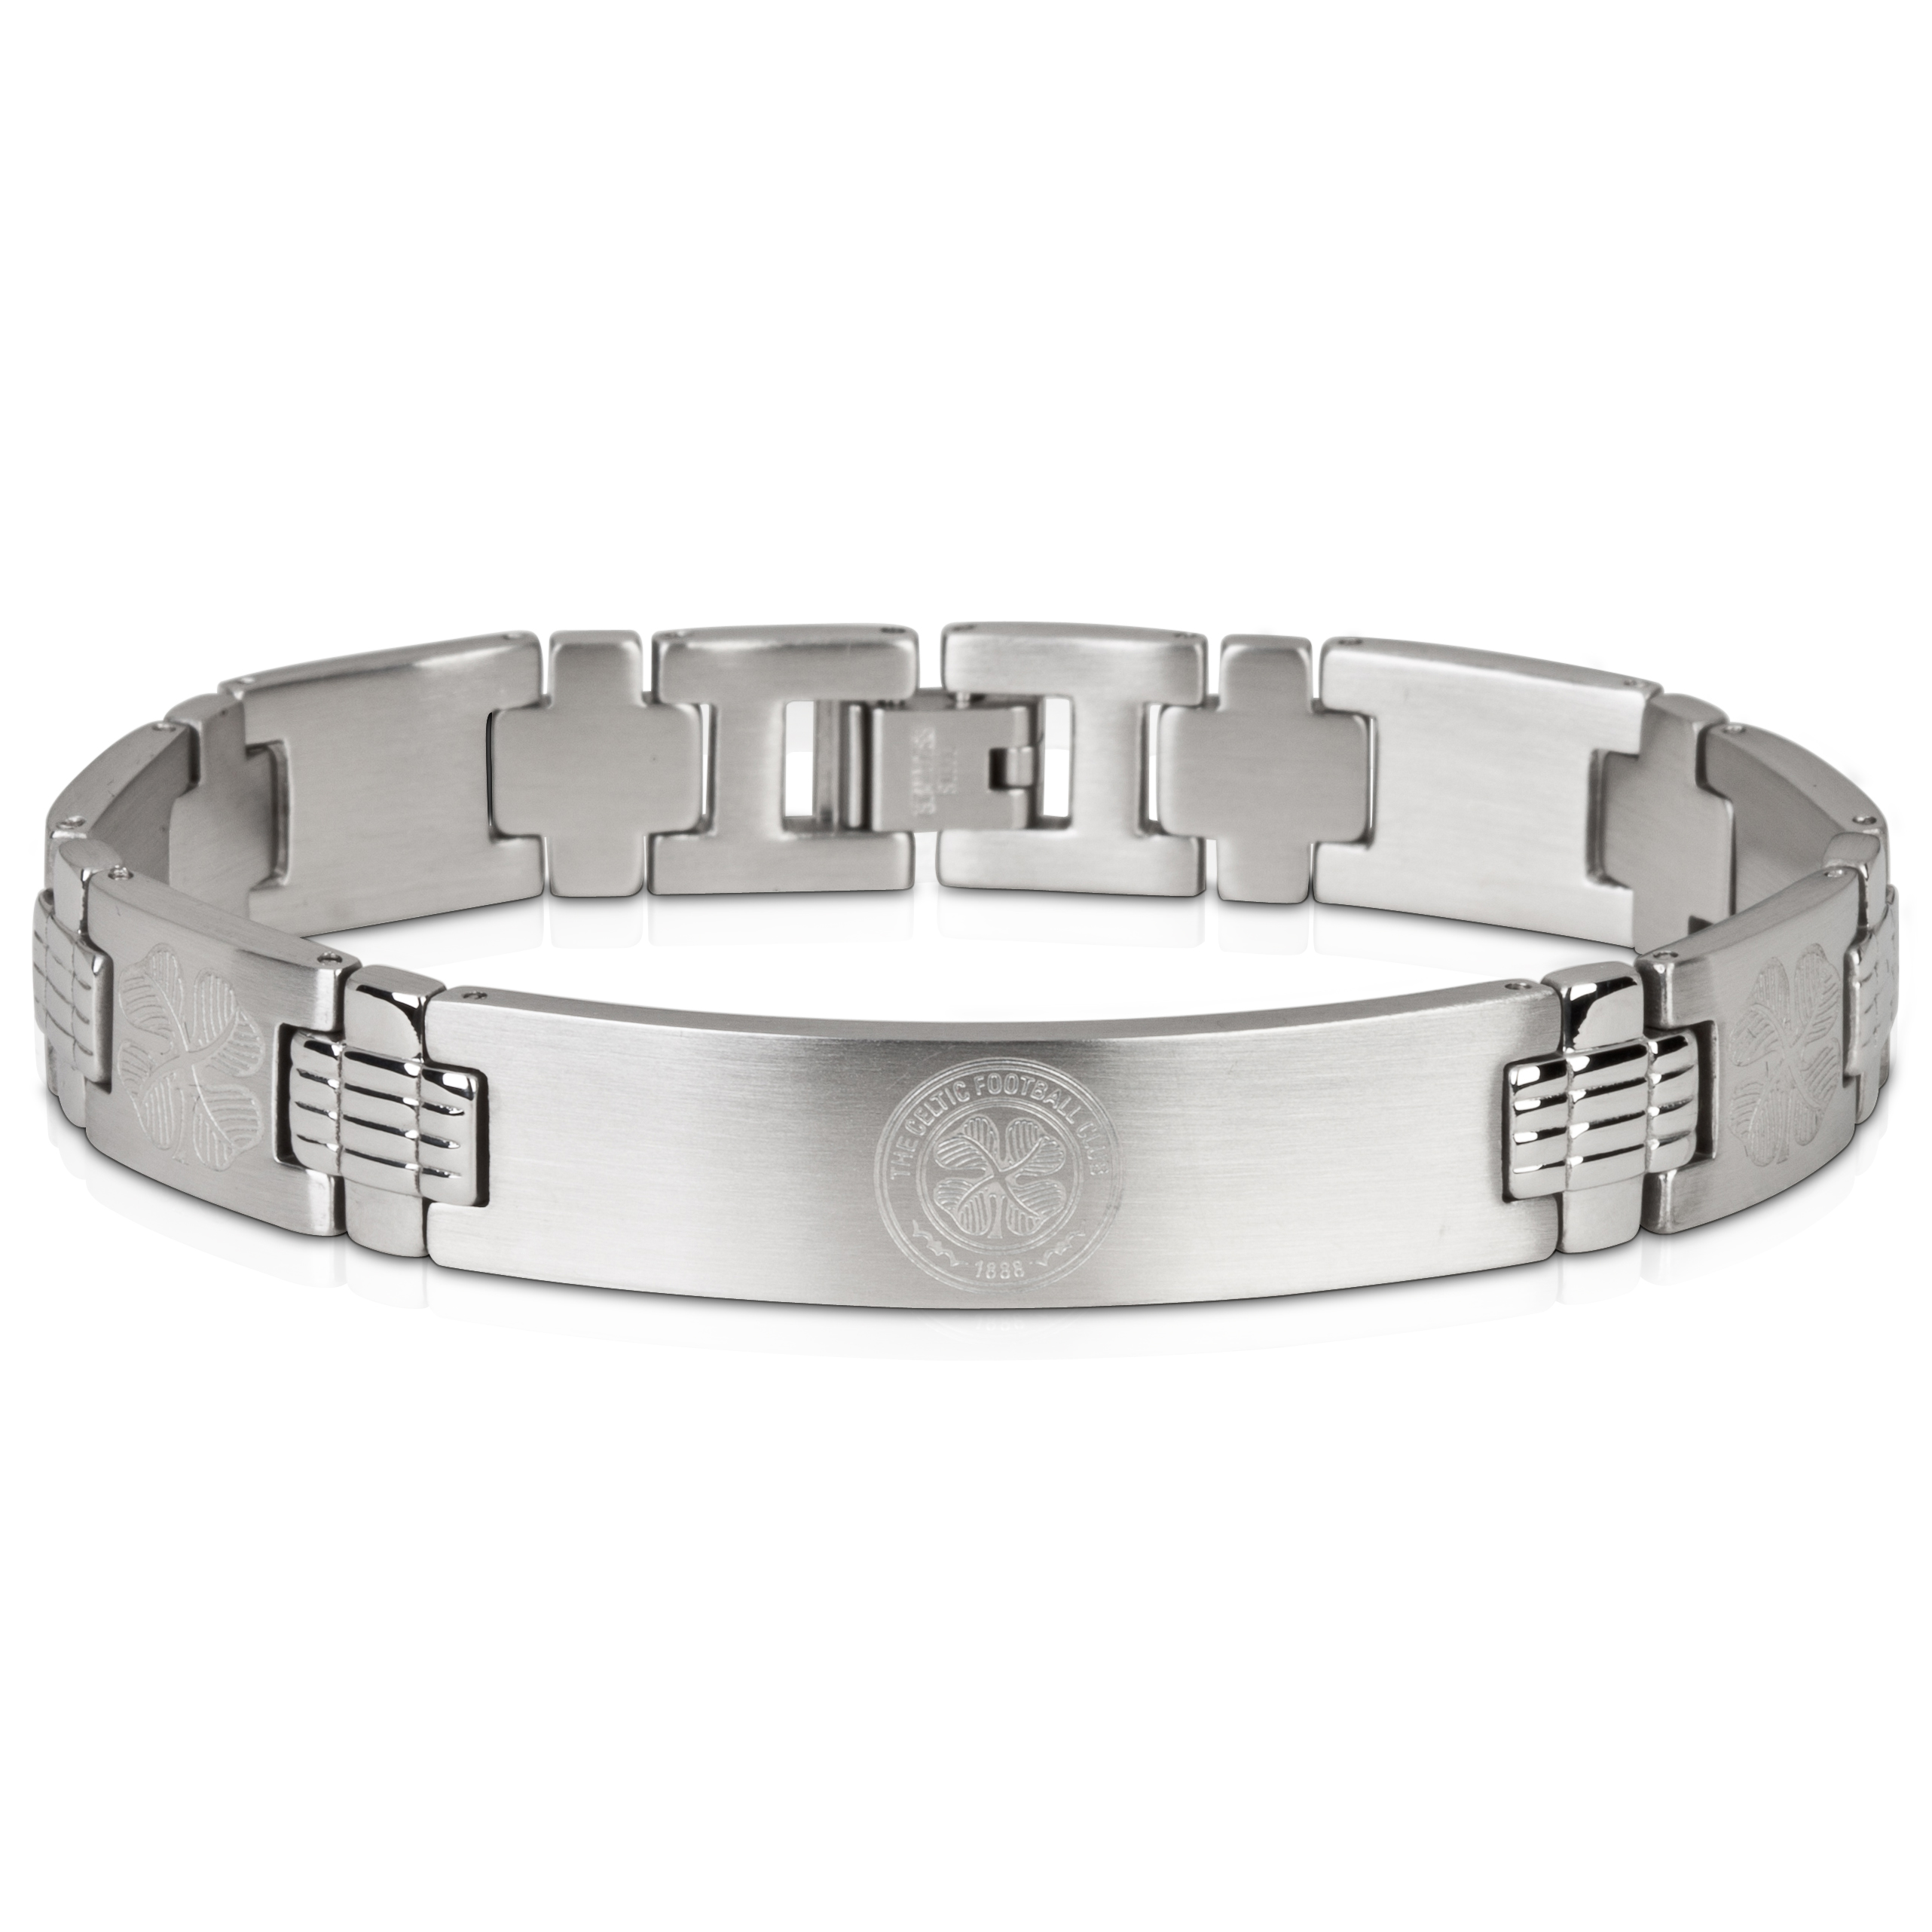 Celtic Crest with Multi 4 Leaf Clover Bracelet - Stainless Steel